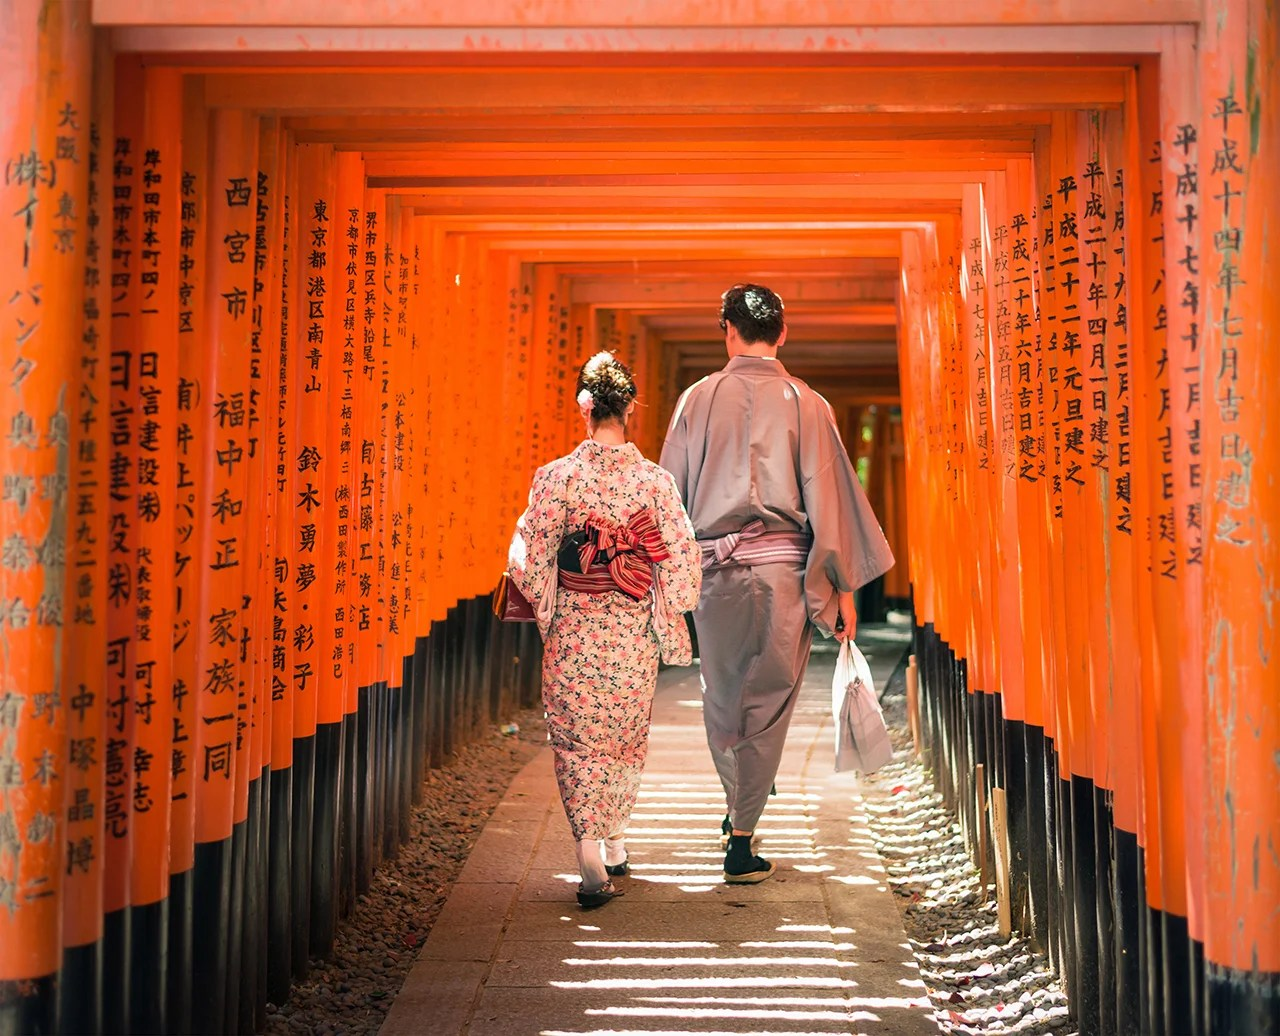 Kyoto Japan Honeymoon Destinations 2018. (Photo by George Clerk via Getty Images)